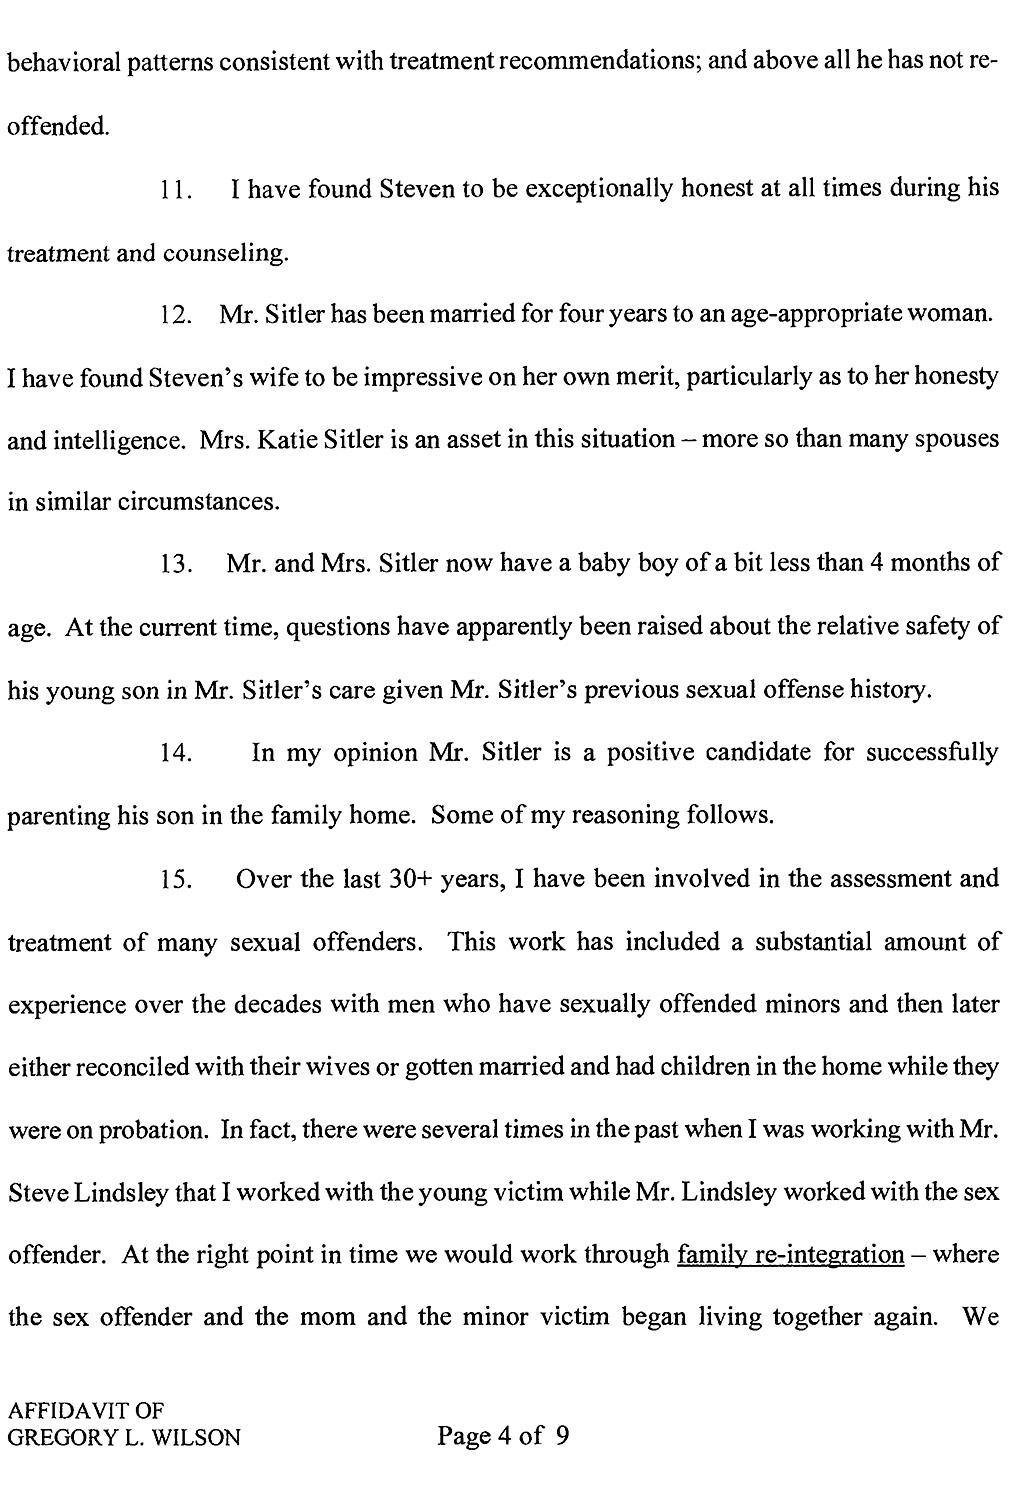 Affidavit of Gregory L. Wilson page 4